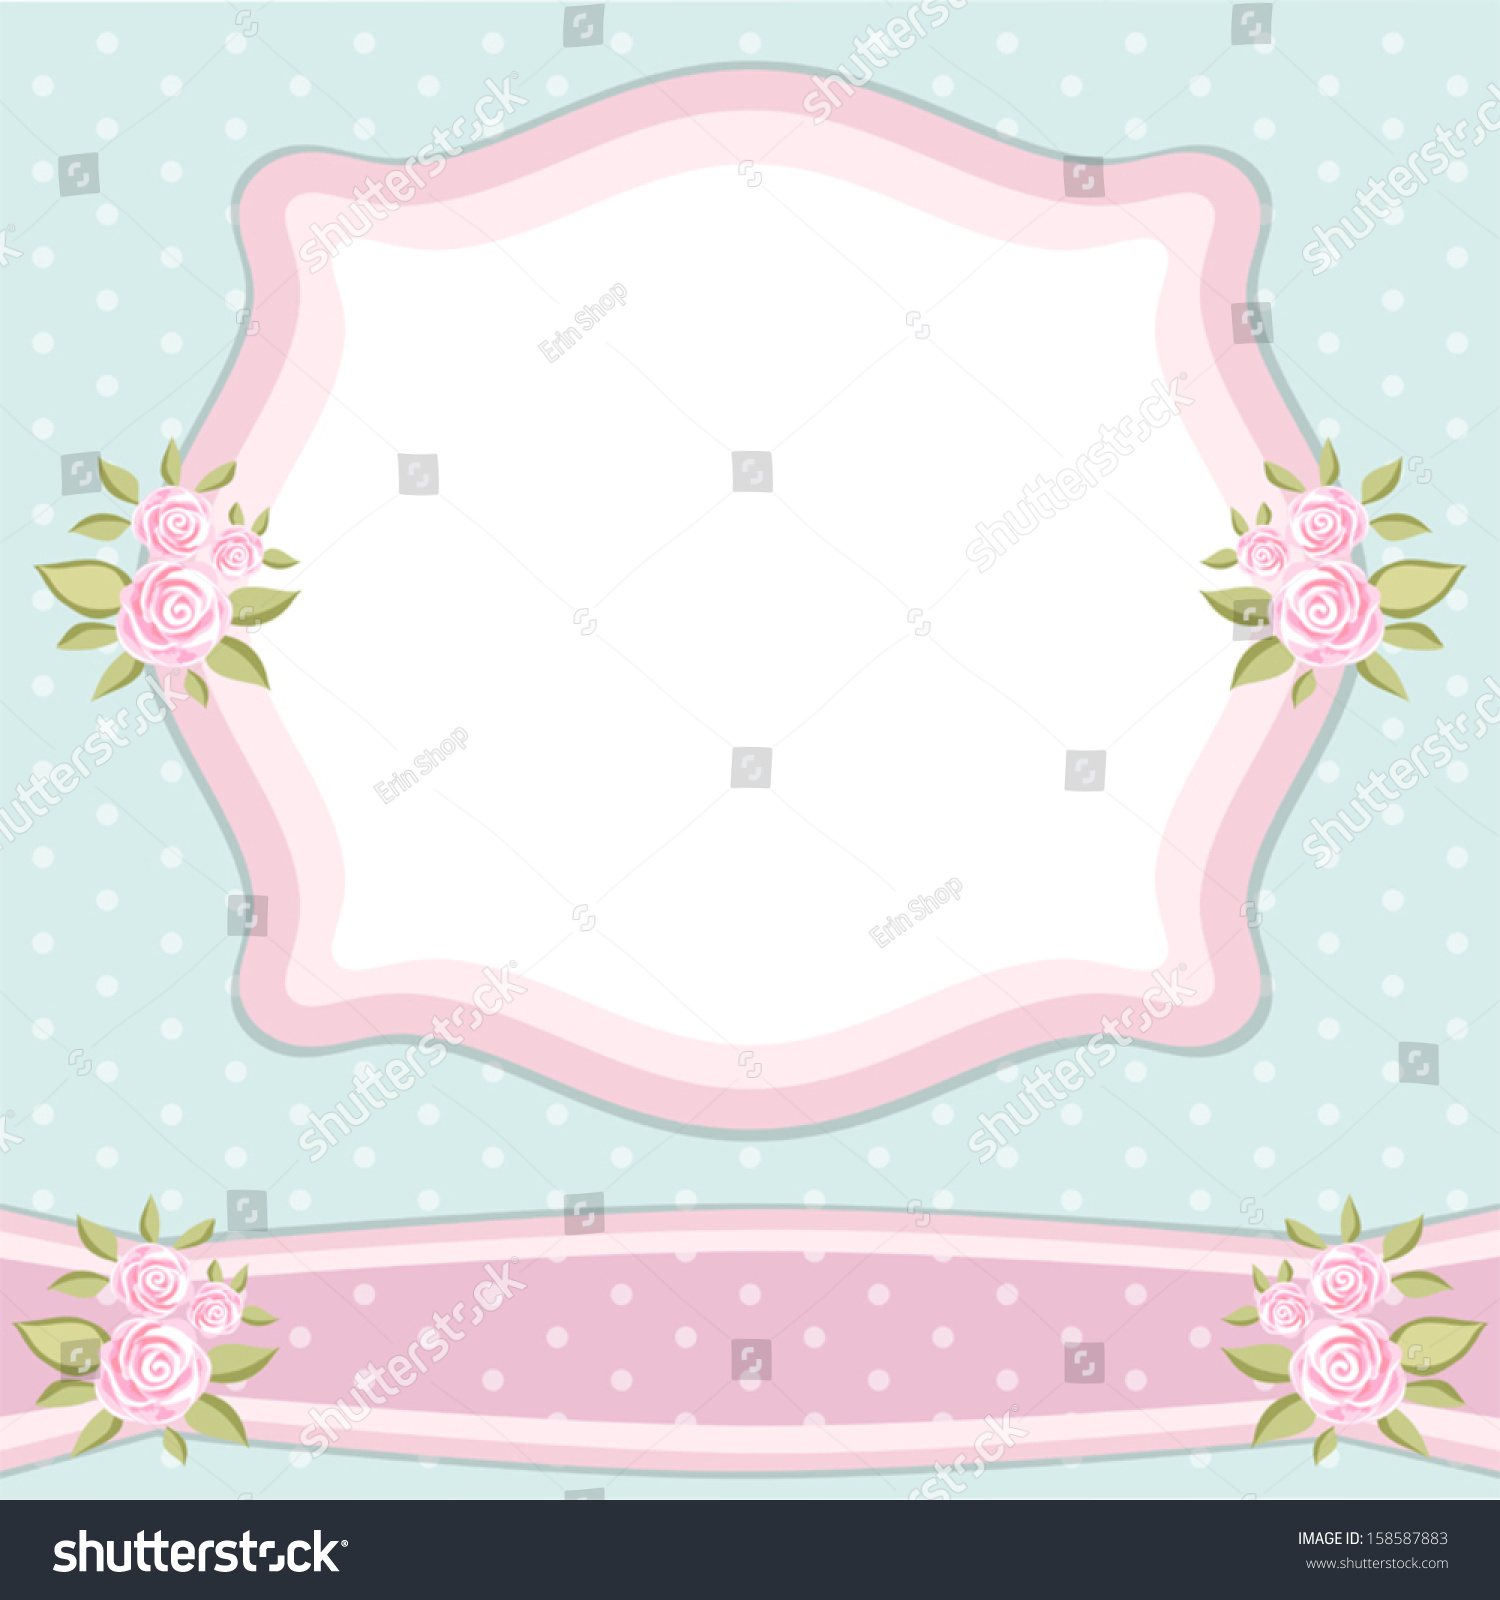 Vintage Frame Roses Shabby Chic Style Stock Vector Royalty Free